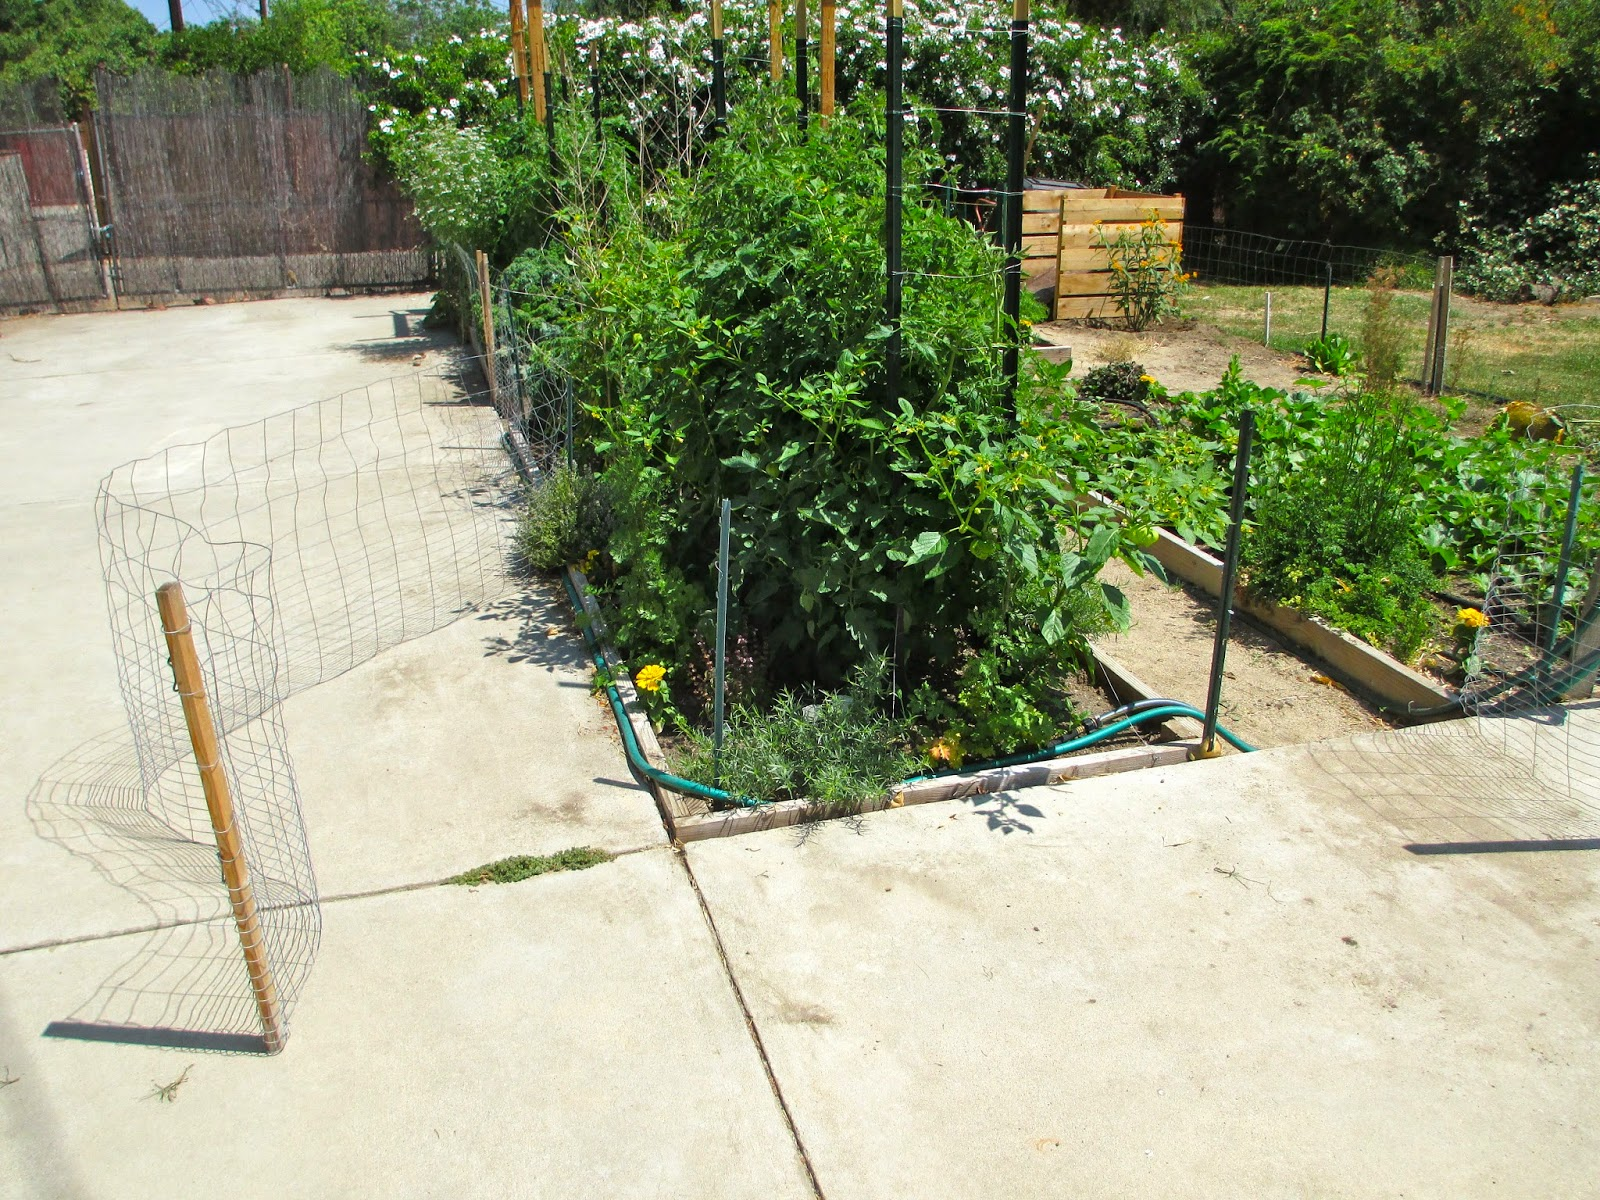 My 75 Ft Fence With 5 Gates Cost Less Than $100. It Is Made Of 28 Inch Rabbit  Fencing, 3 Ft Metal Garden Posts, 1 X 2 Inch Furring Strips, And Simple Eye  ...